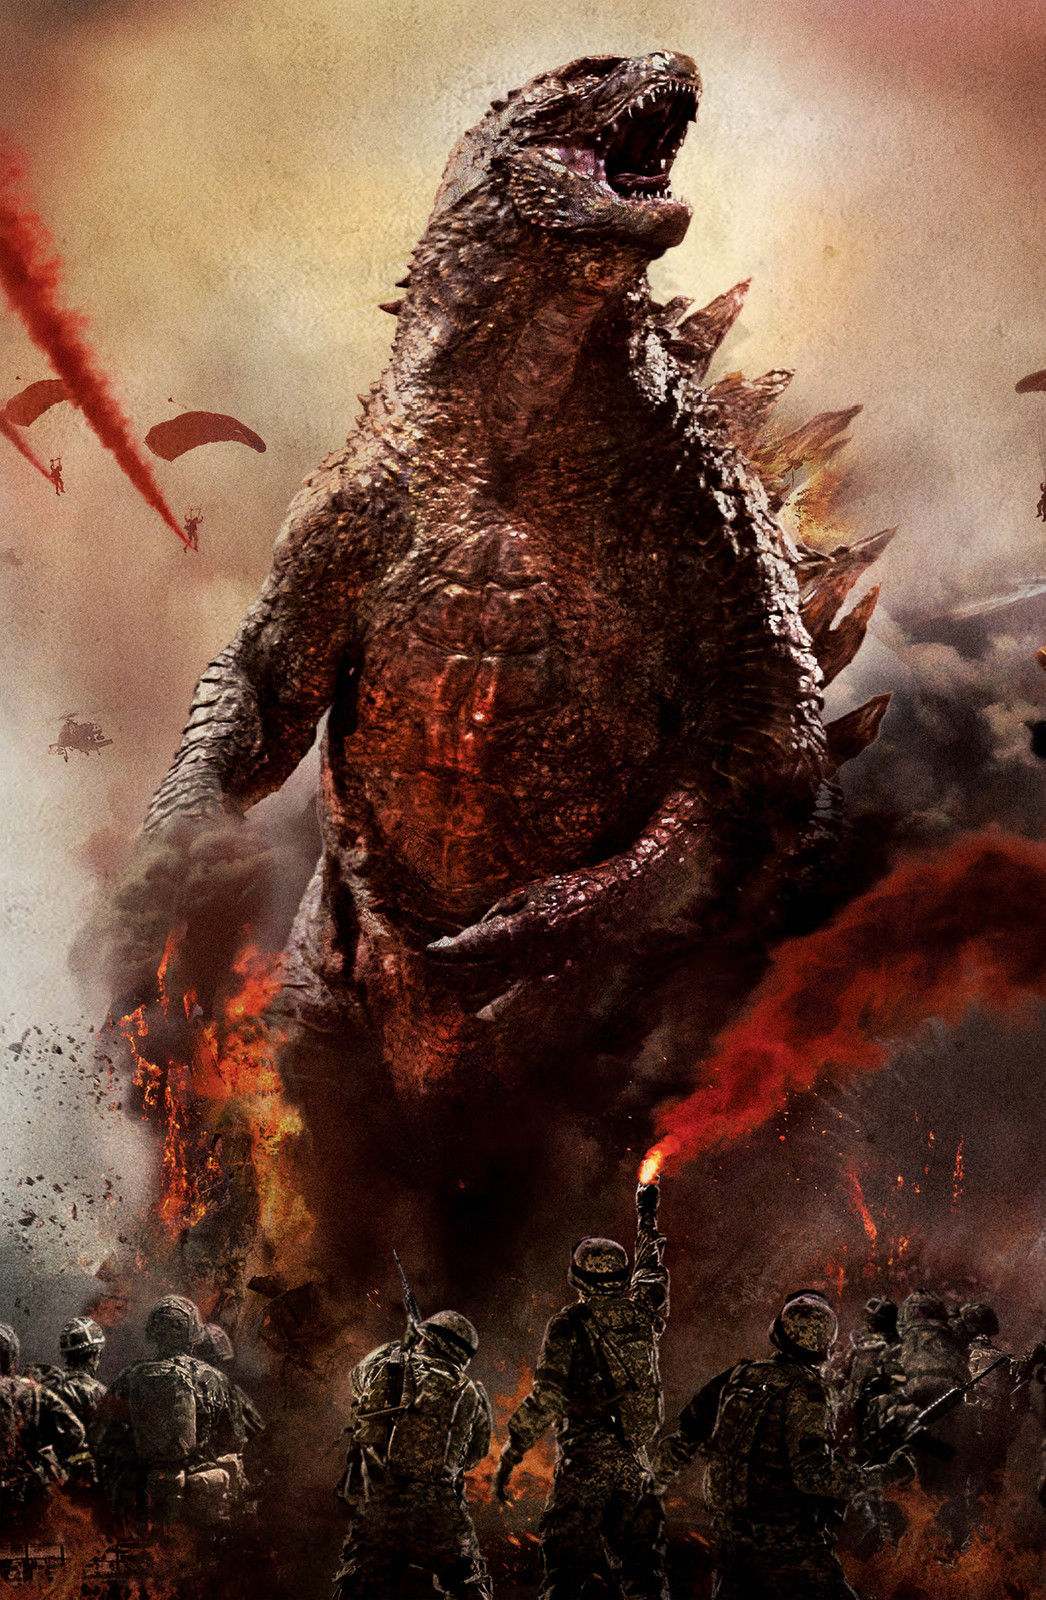 Godzilla Imax 3D Movie Review